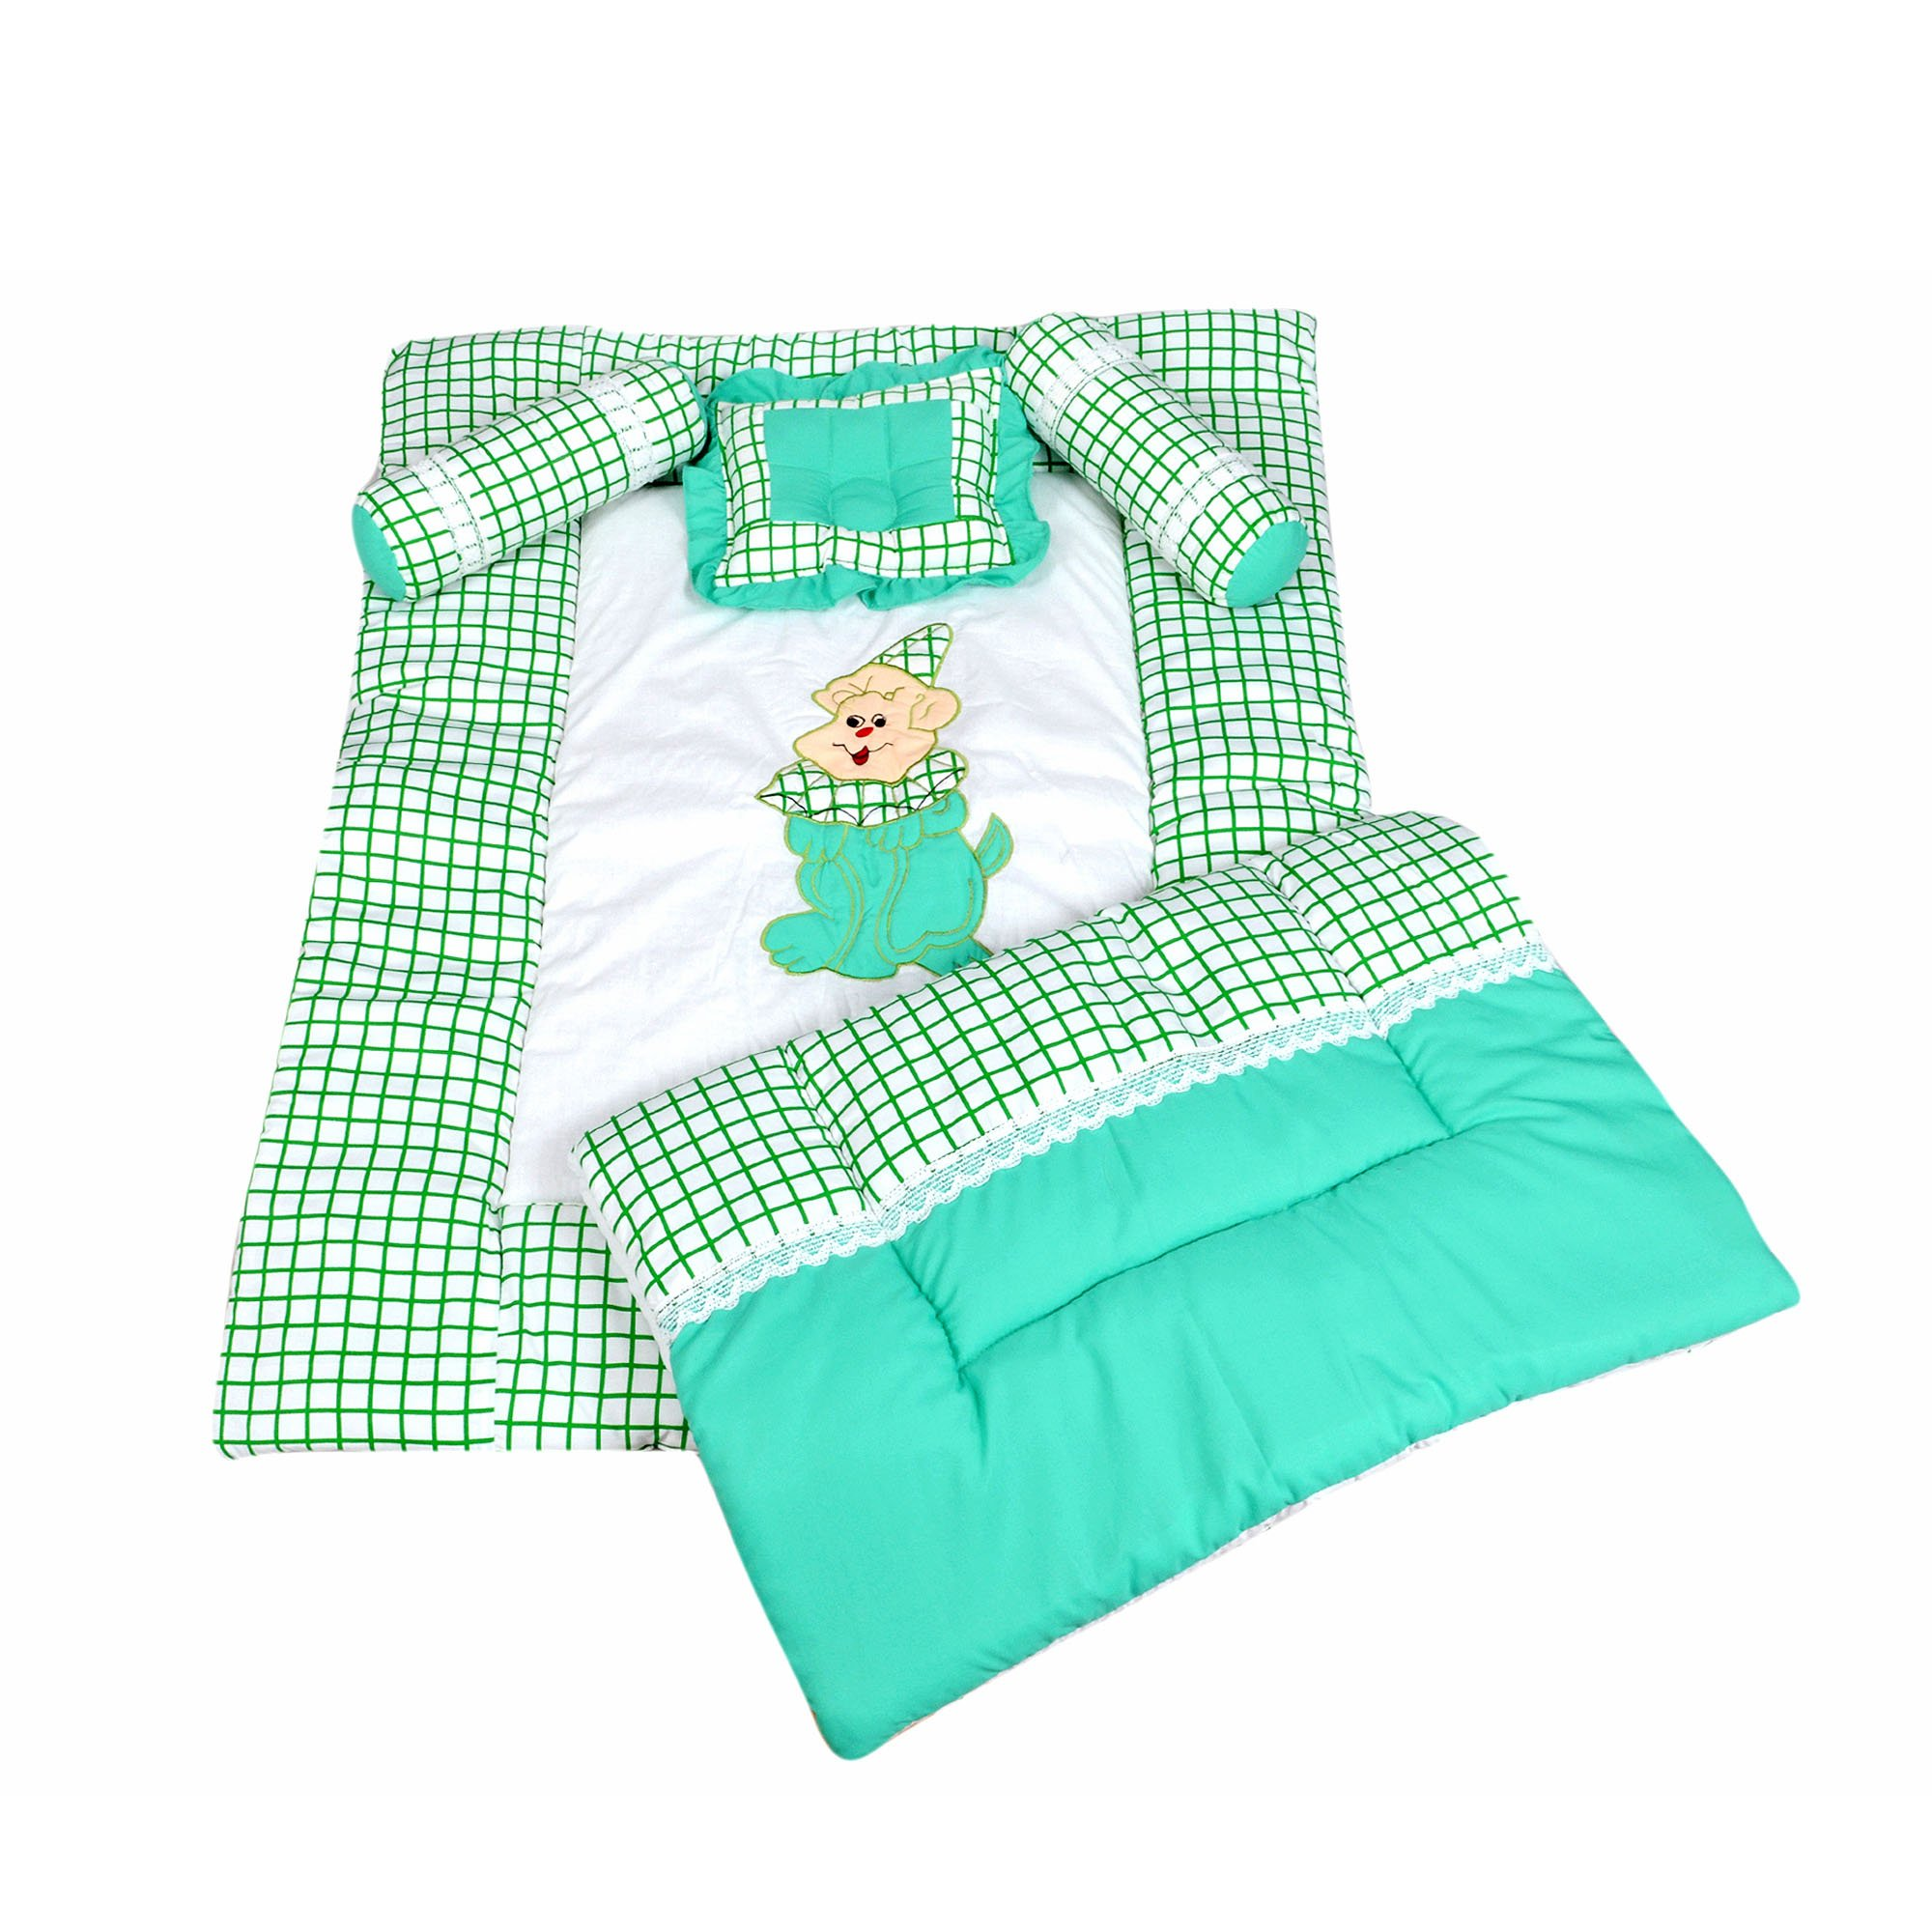 Maple Krafts Pure Cotton Baby Bedding set upto 24 months Green with Pillow